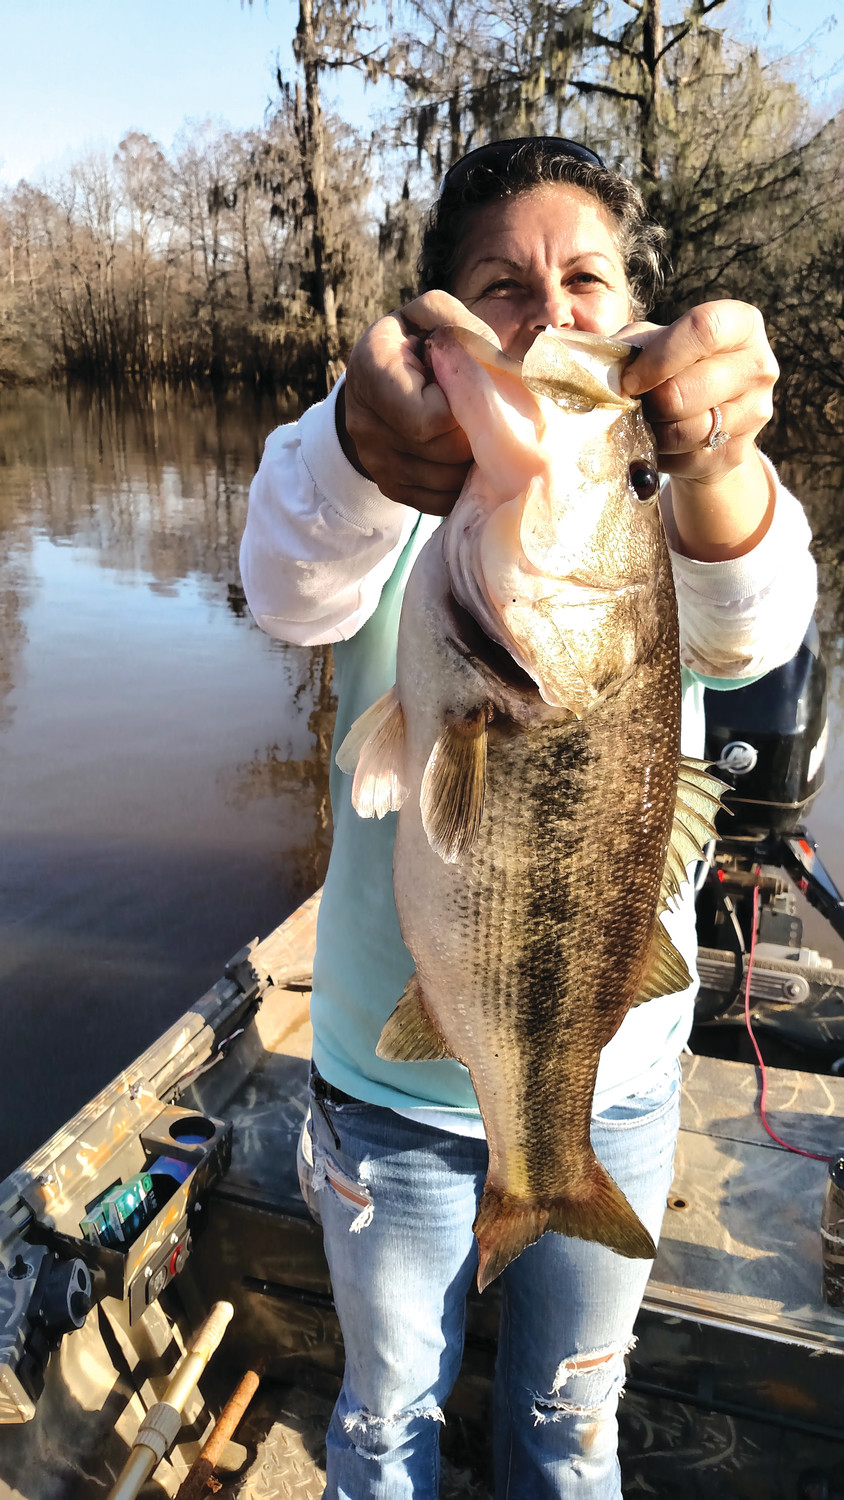 Michelle Nunnery caught her first big bass fishing in Sparkleberry Swamp. The fish weighed 10 pounds.